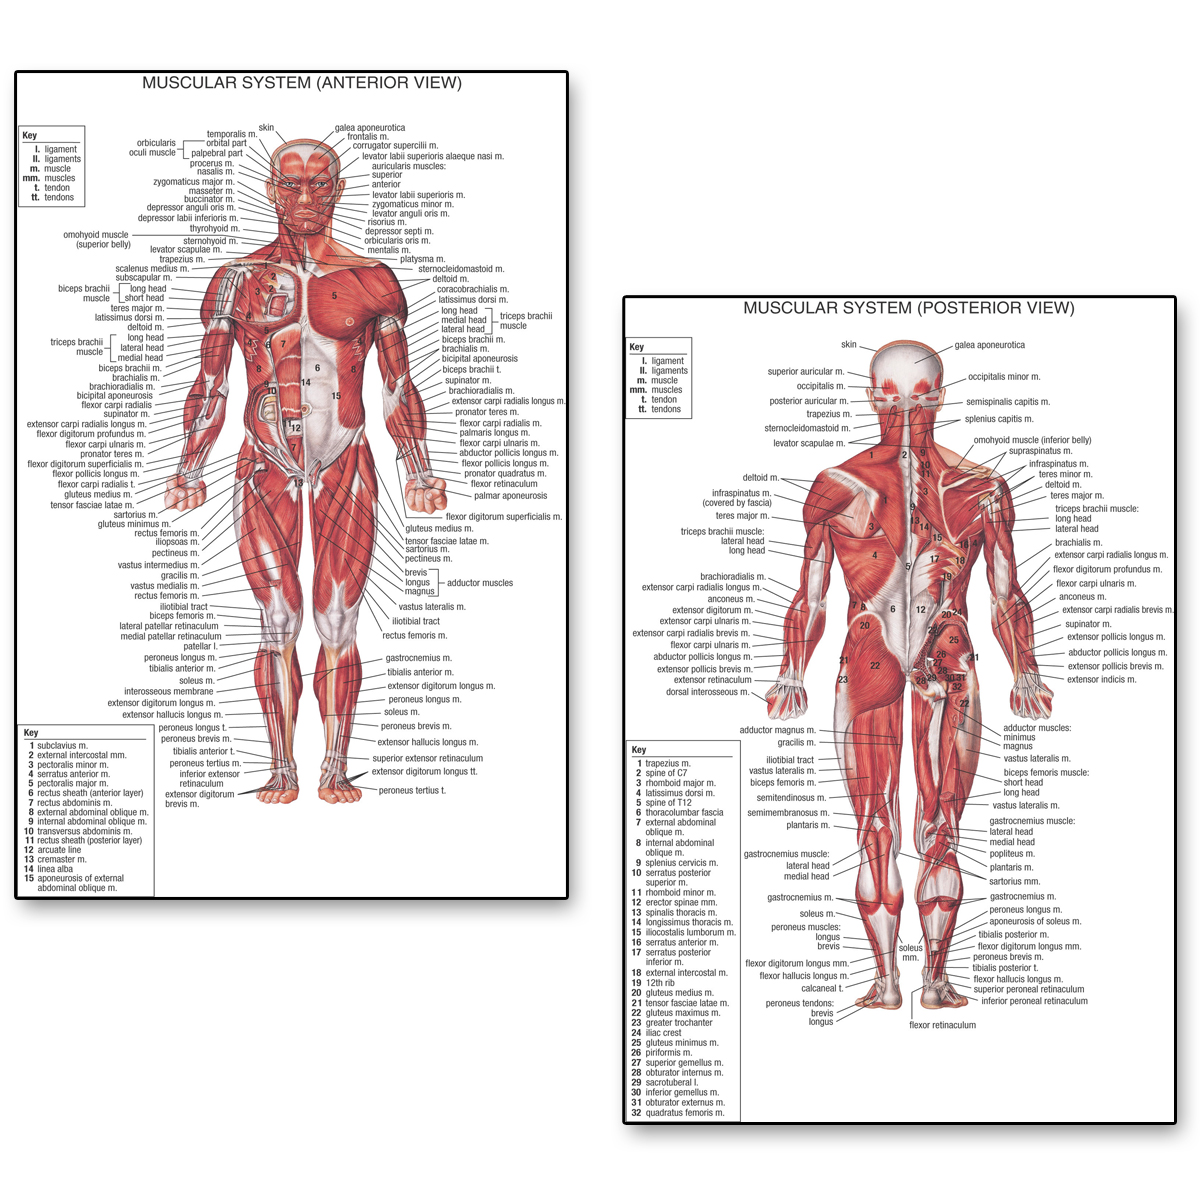 Human Anatomy posterior anterior view anatomy Muscles System Art posters Silk Fabric Print for Medical classroom study Decor ...